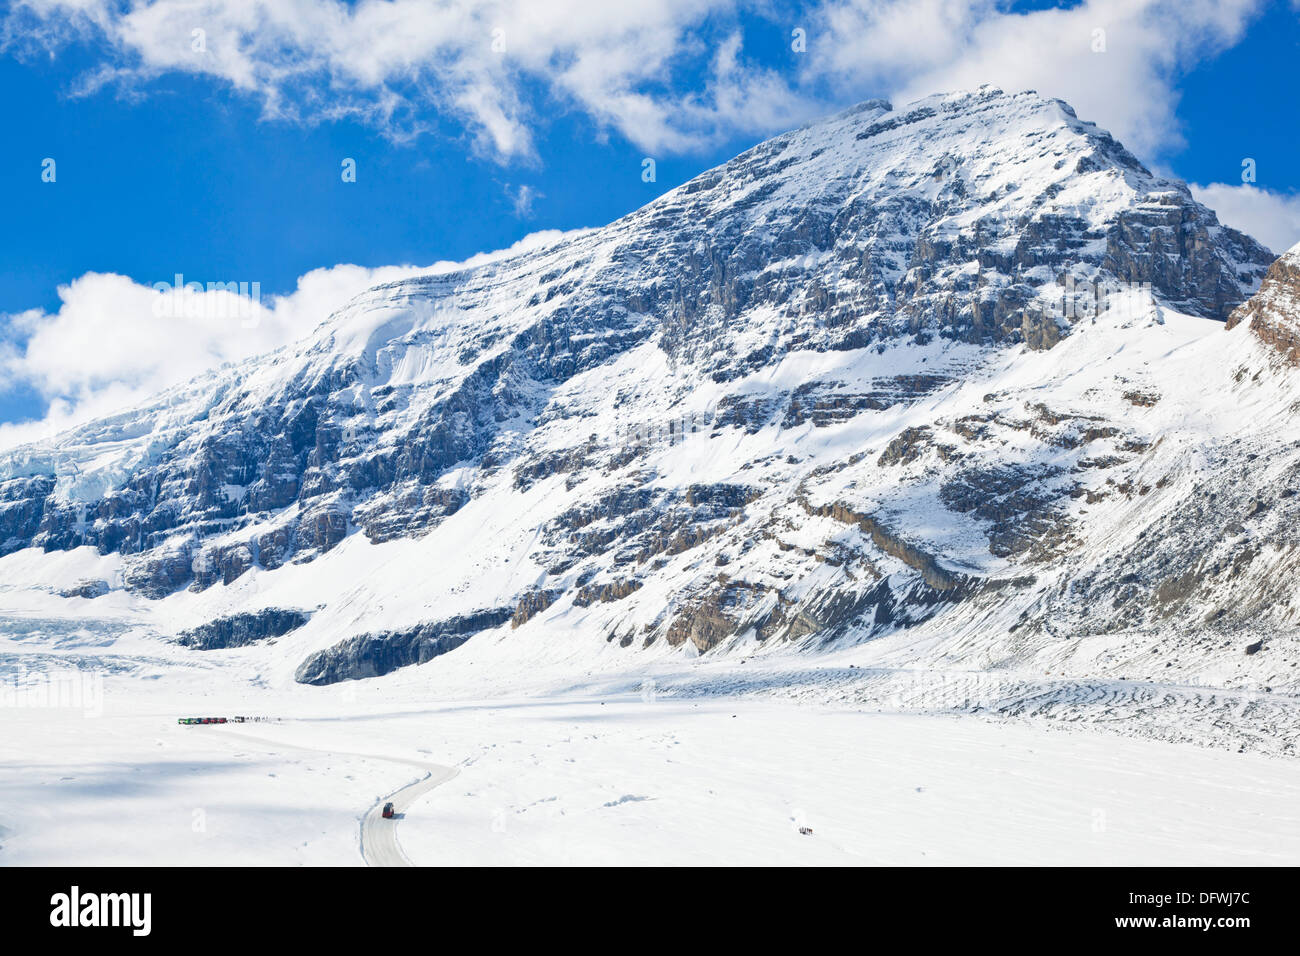 Brewsters Snocoach driving onto the Athabasca glacier Columbia Icefield in Jasper National Park Alberta Canada North America - Stock Image